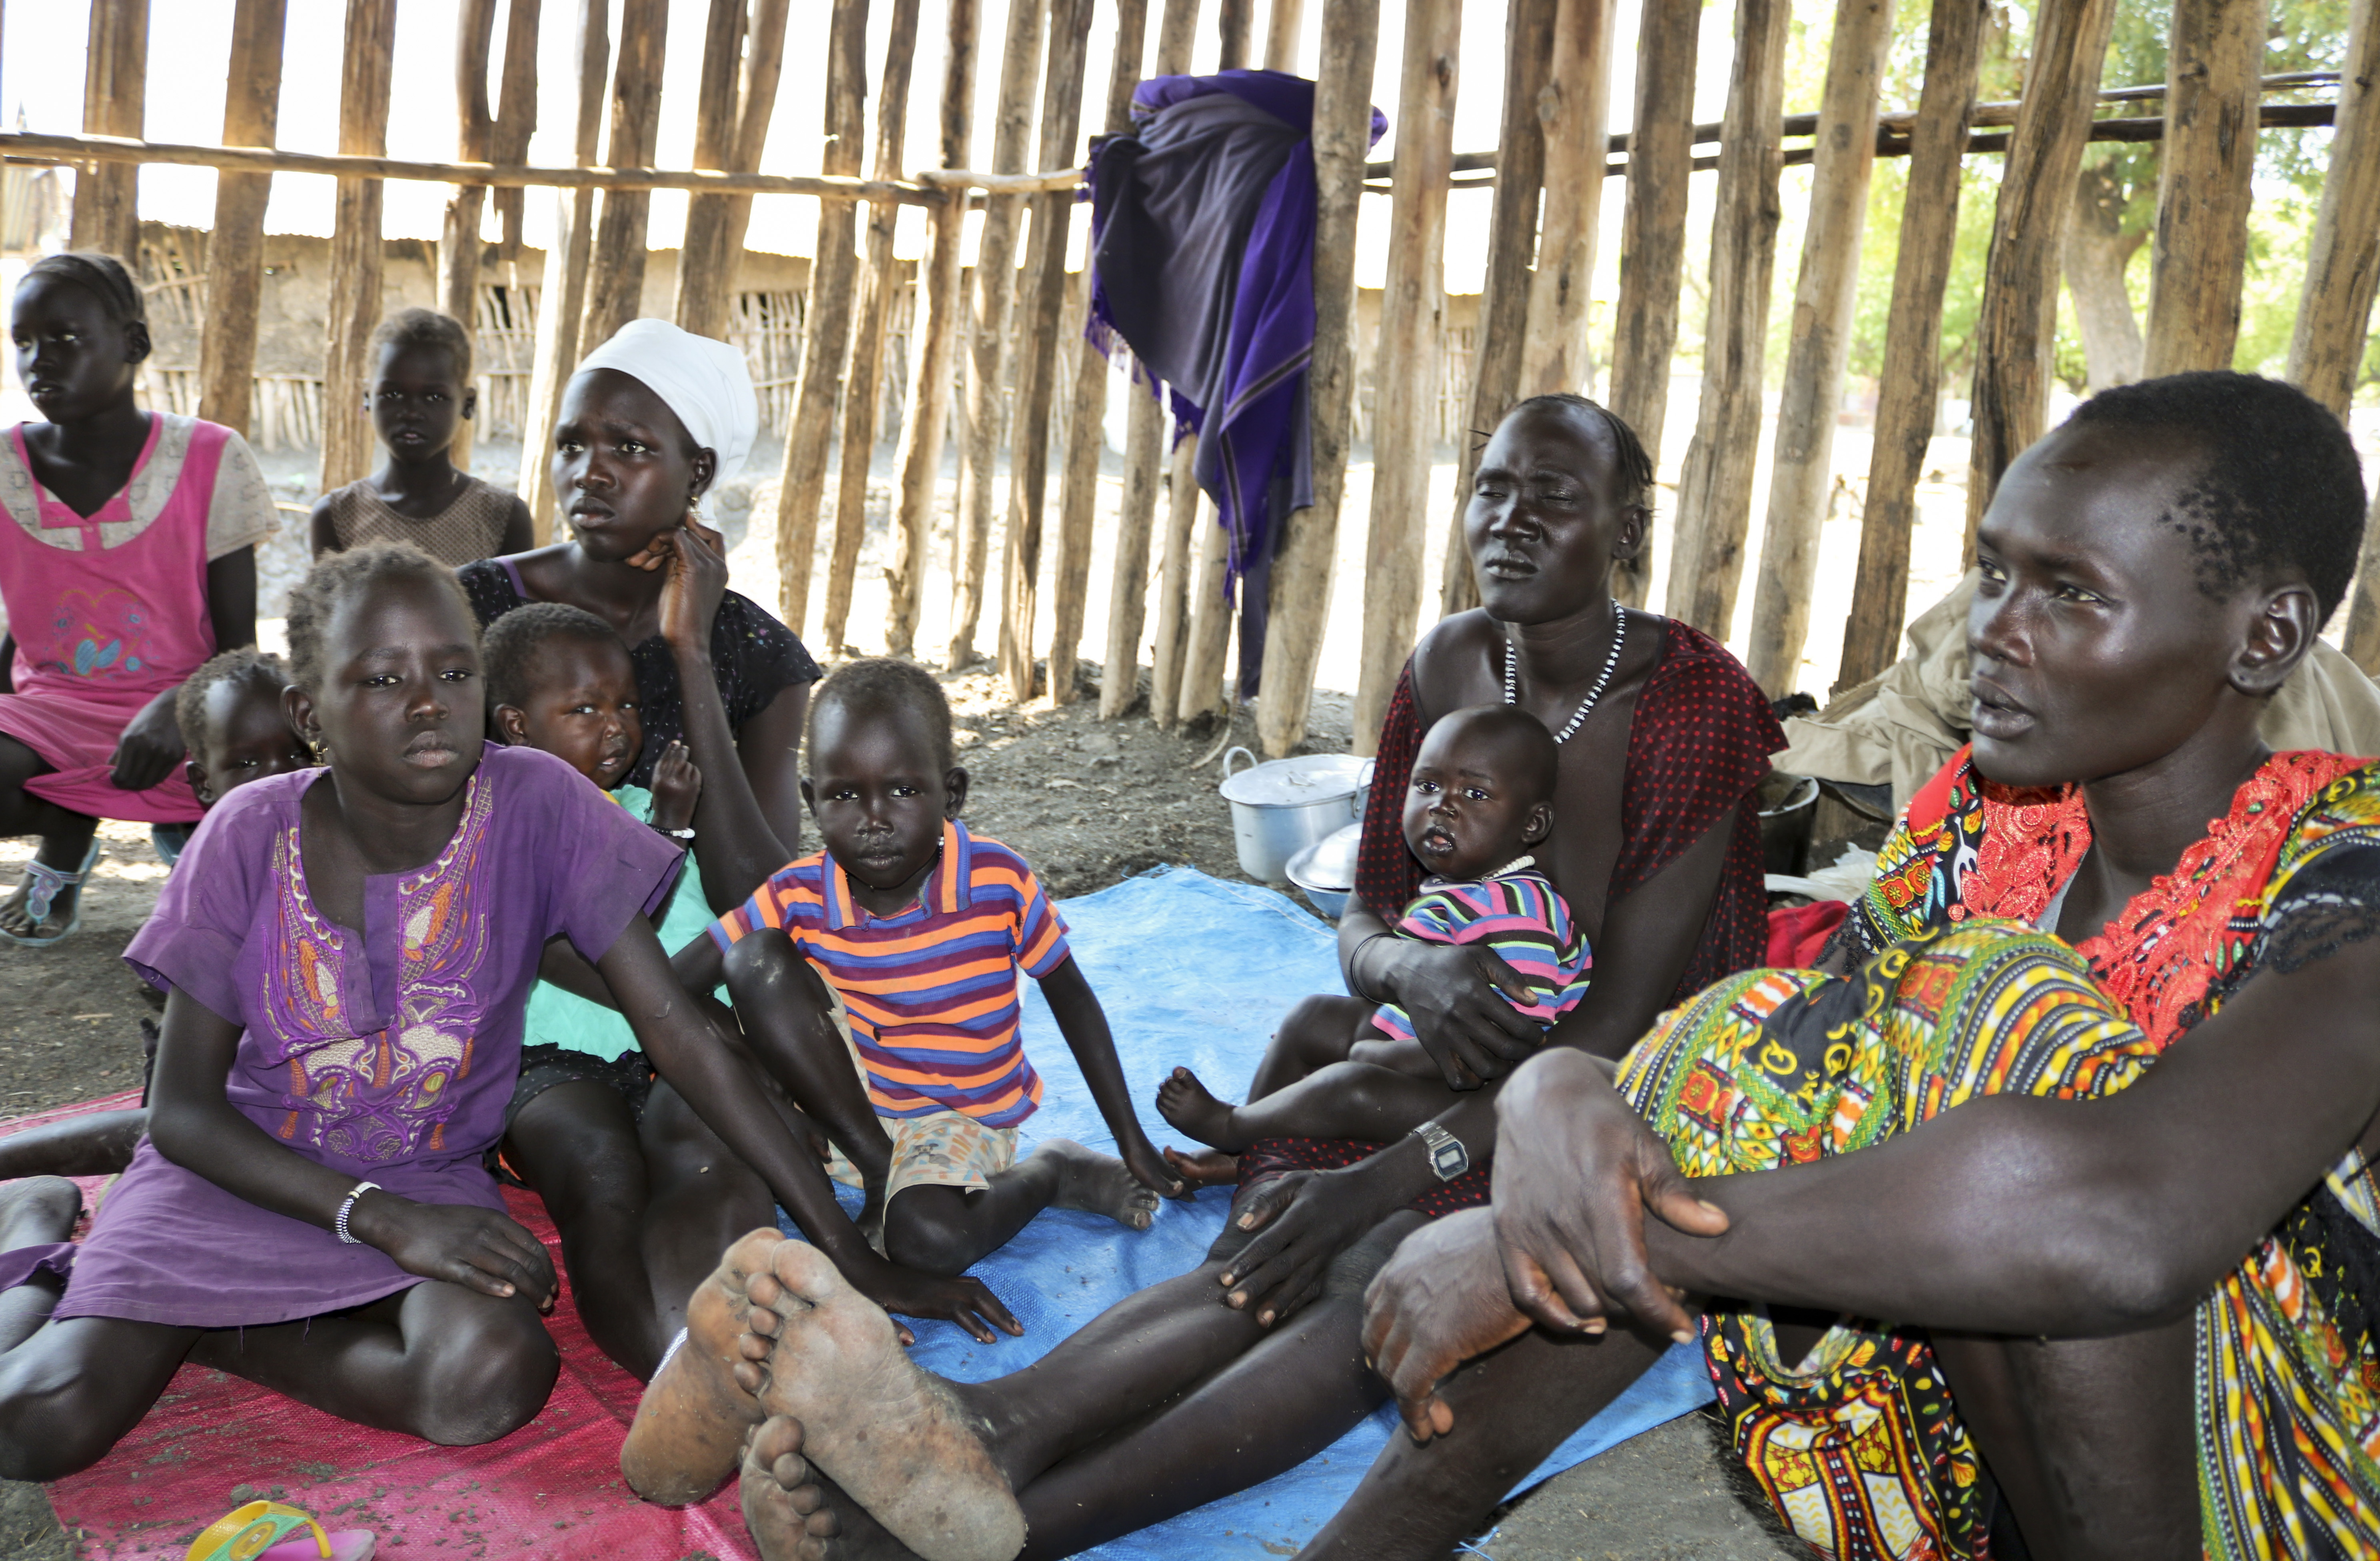 In this photo taken Friday, Jan. 19, 2018, recently displaced families who arrived five days before claiming that government troops attacked their towns, shelter in a run-down school in Akobo, near the Ethiopian border, in South Sudan. United Nations peacekeepers are returning to the only U.N. base in South Sudan